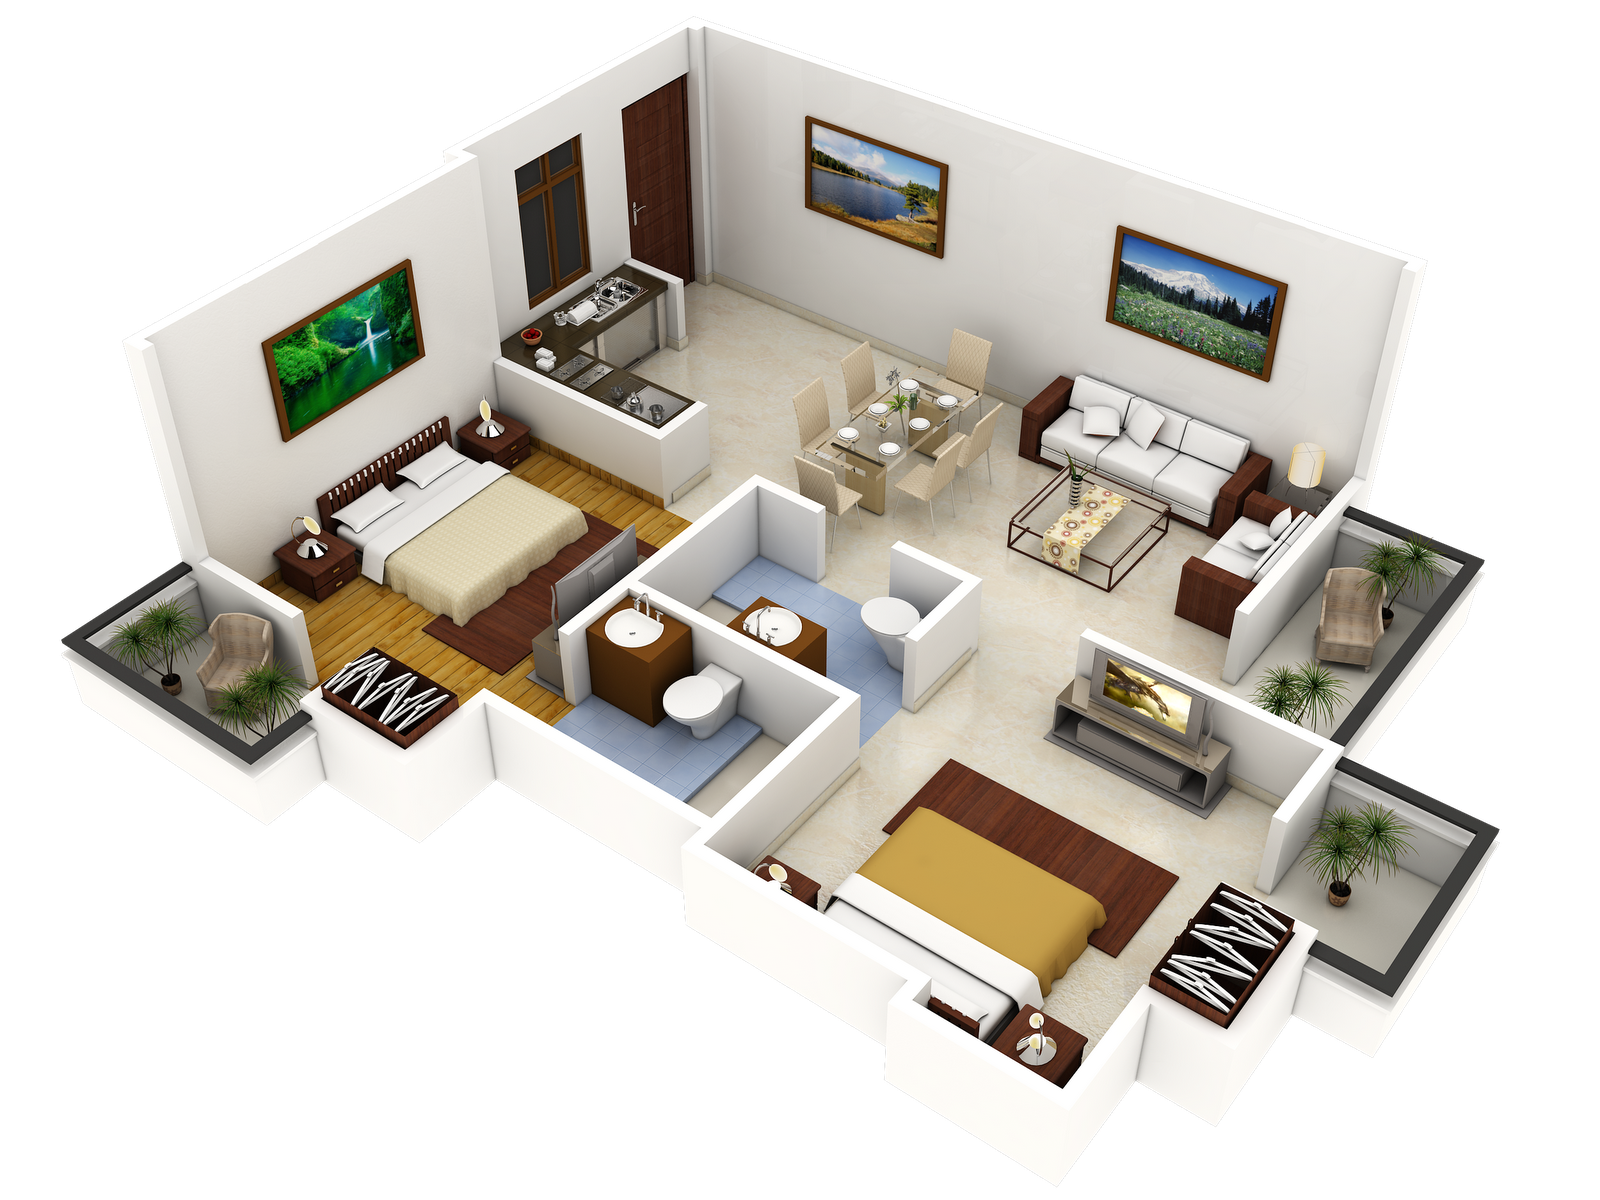 2 bedroom home plans popular interior house ideas House plan 3d view